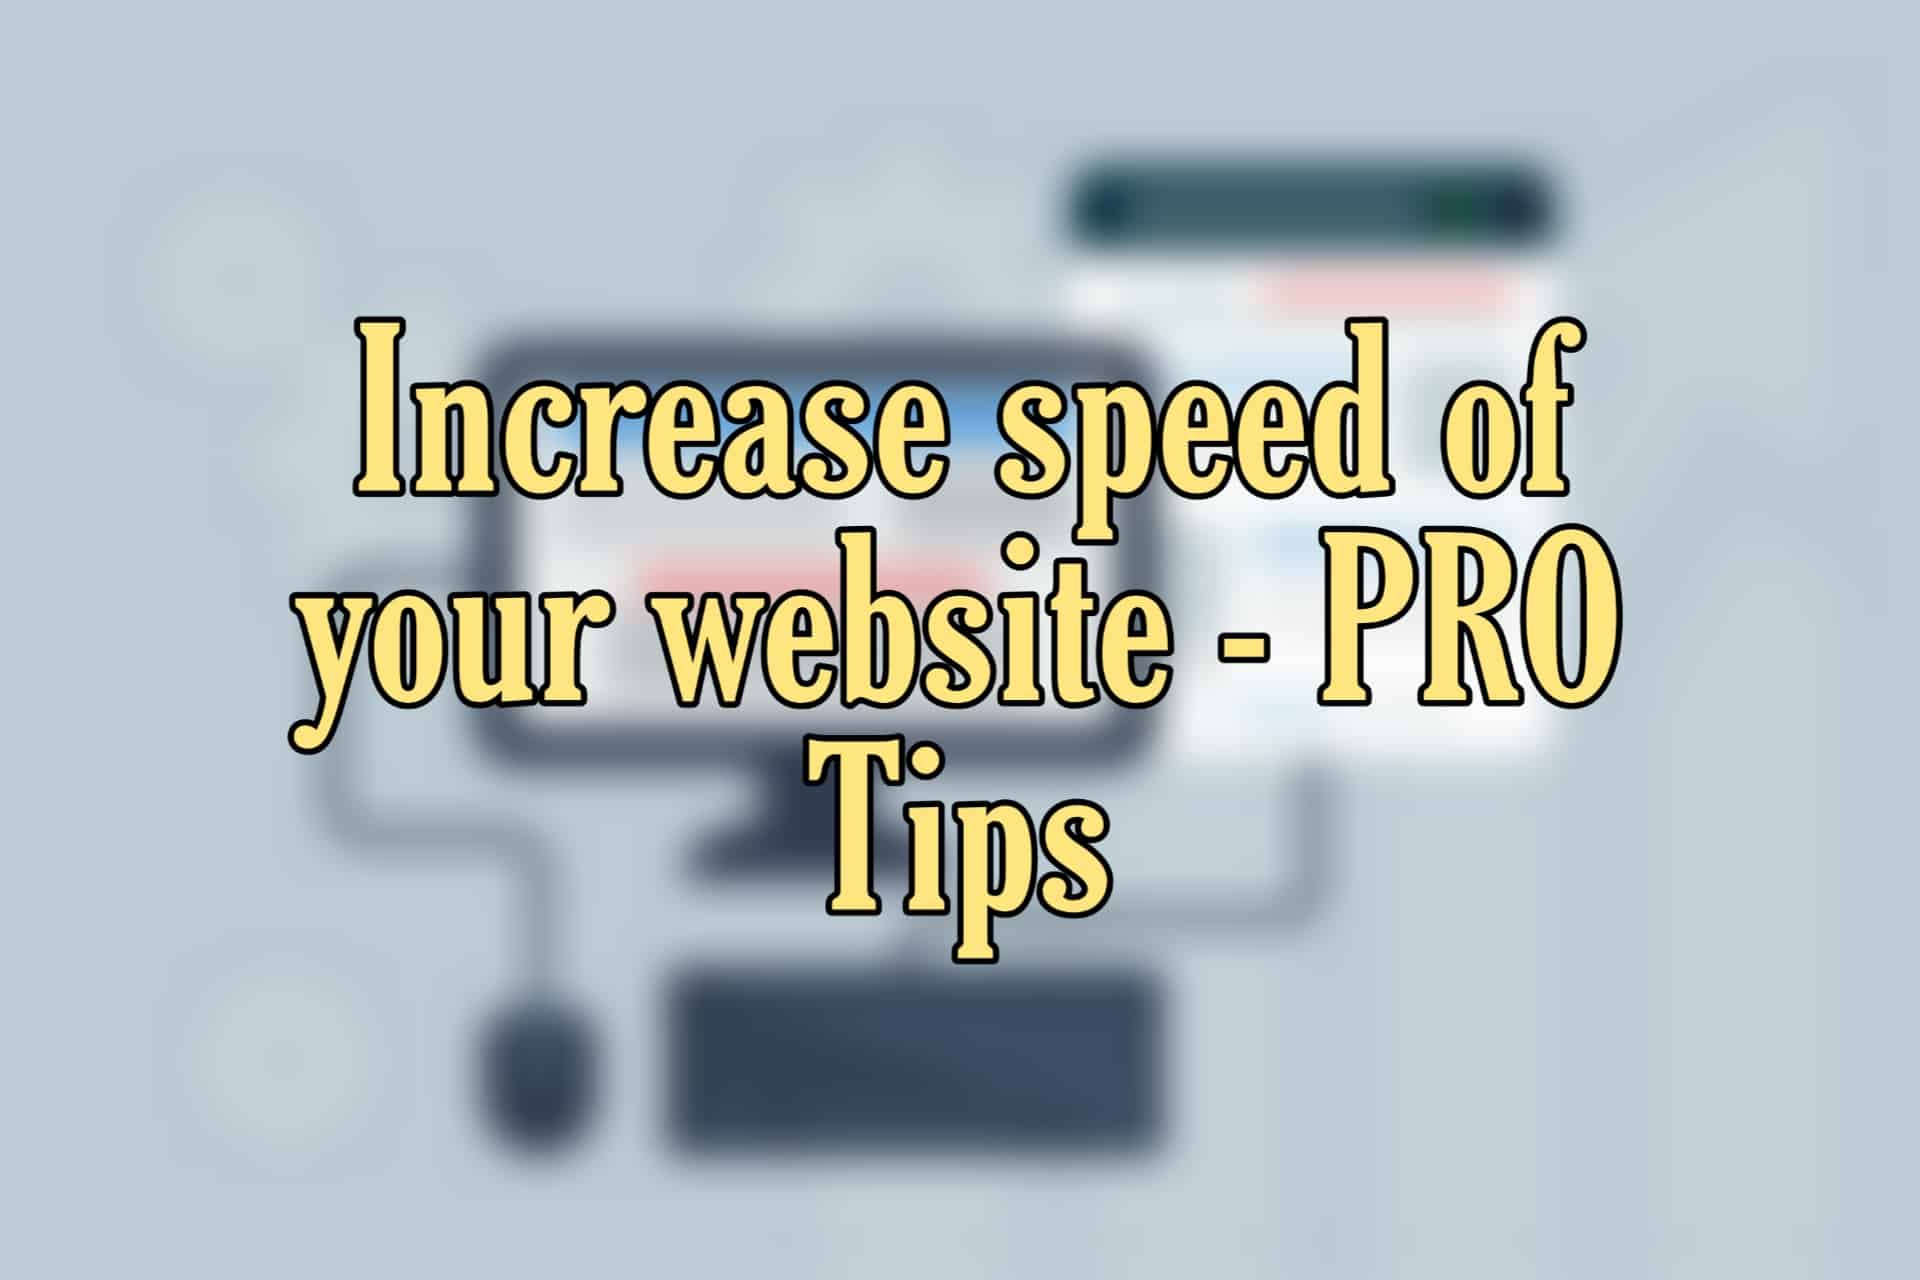 increase speed of website with these PRO Tips!